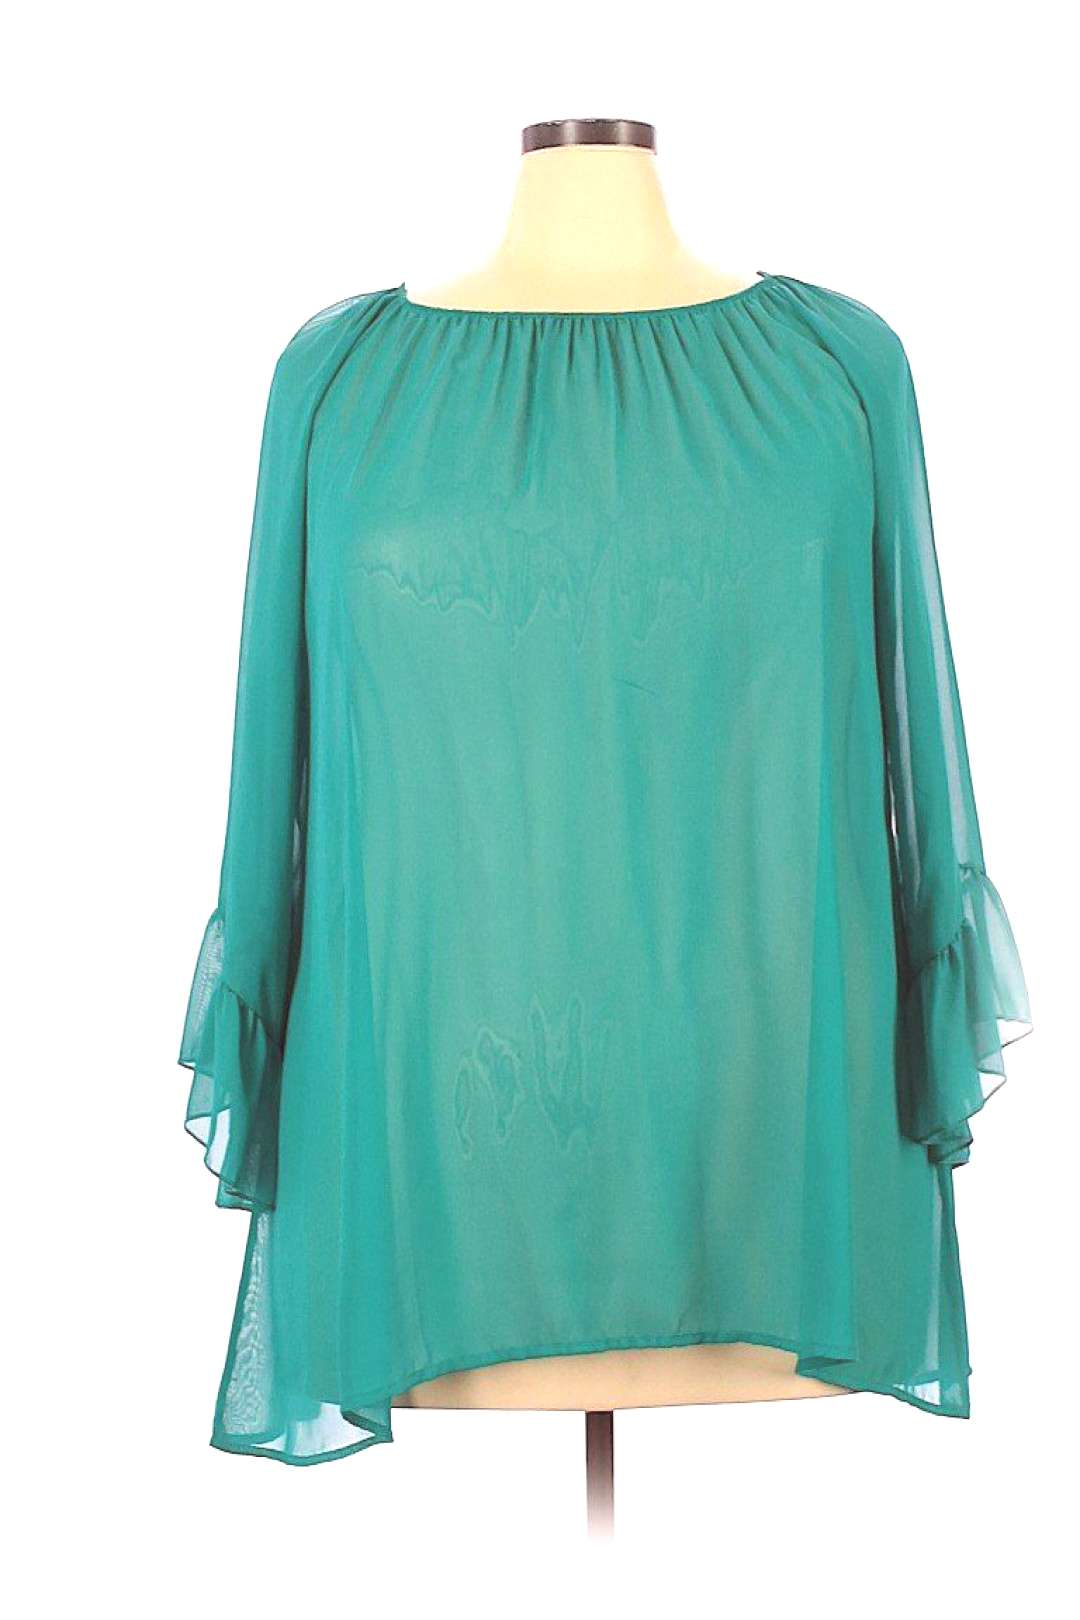 GIDDY UP GLAMOUR Long Sleeve Blouse Blue Solid Tops - Size 2X